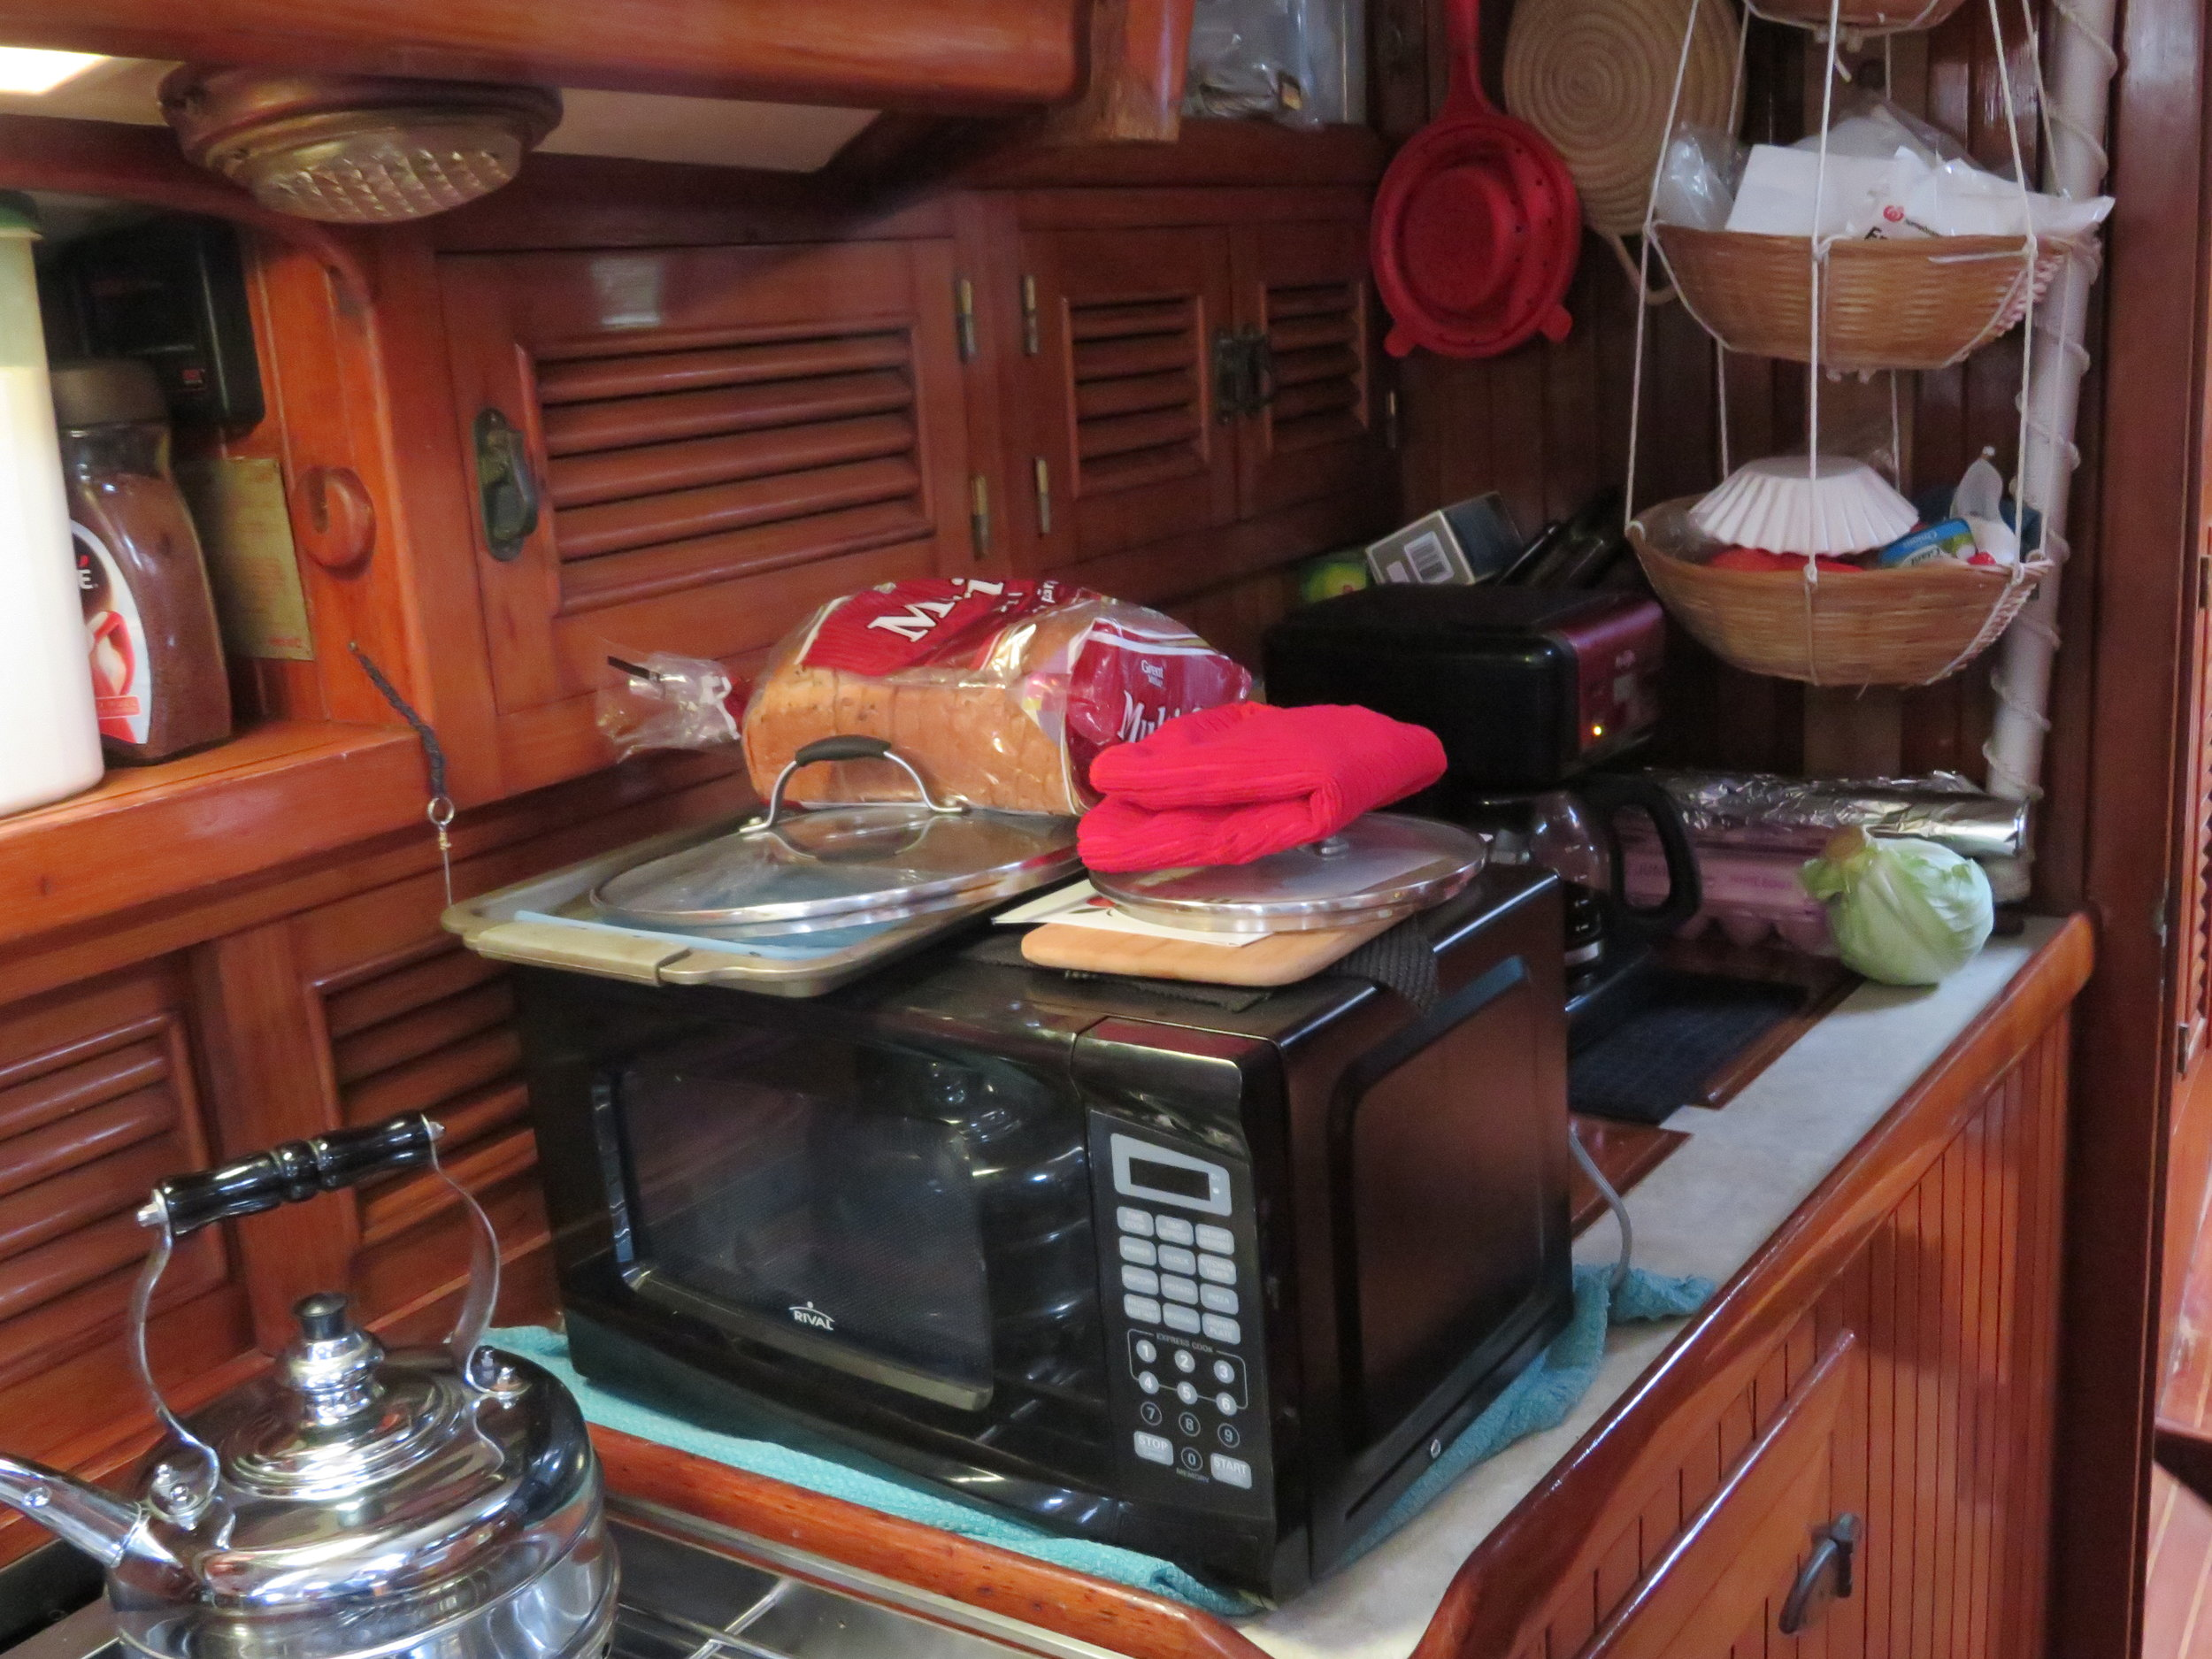 The galley is in a shambles ... but hopes springs eternal that it'll be shipshape soon.